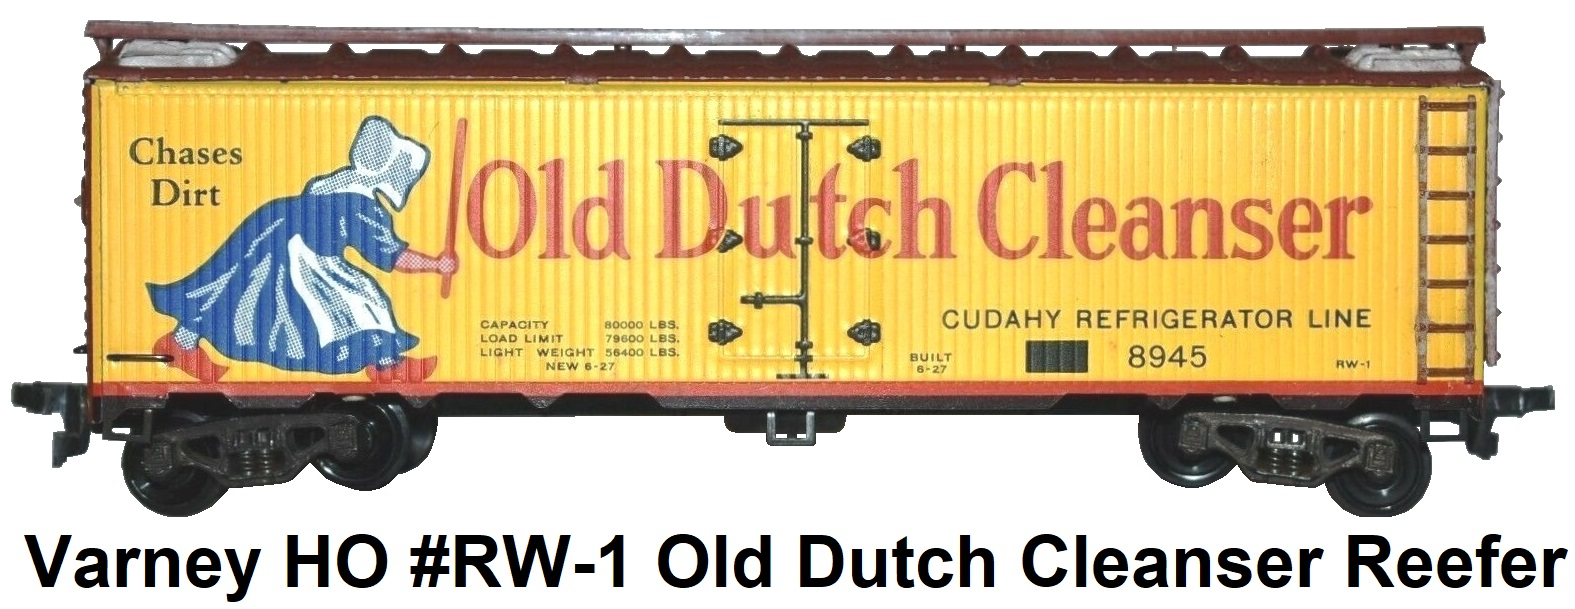 Varney HO #RW-1 Old Dutch Cleanser Woodside Billboard Reefer